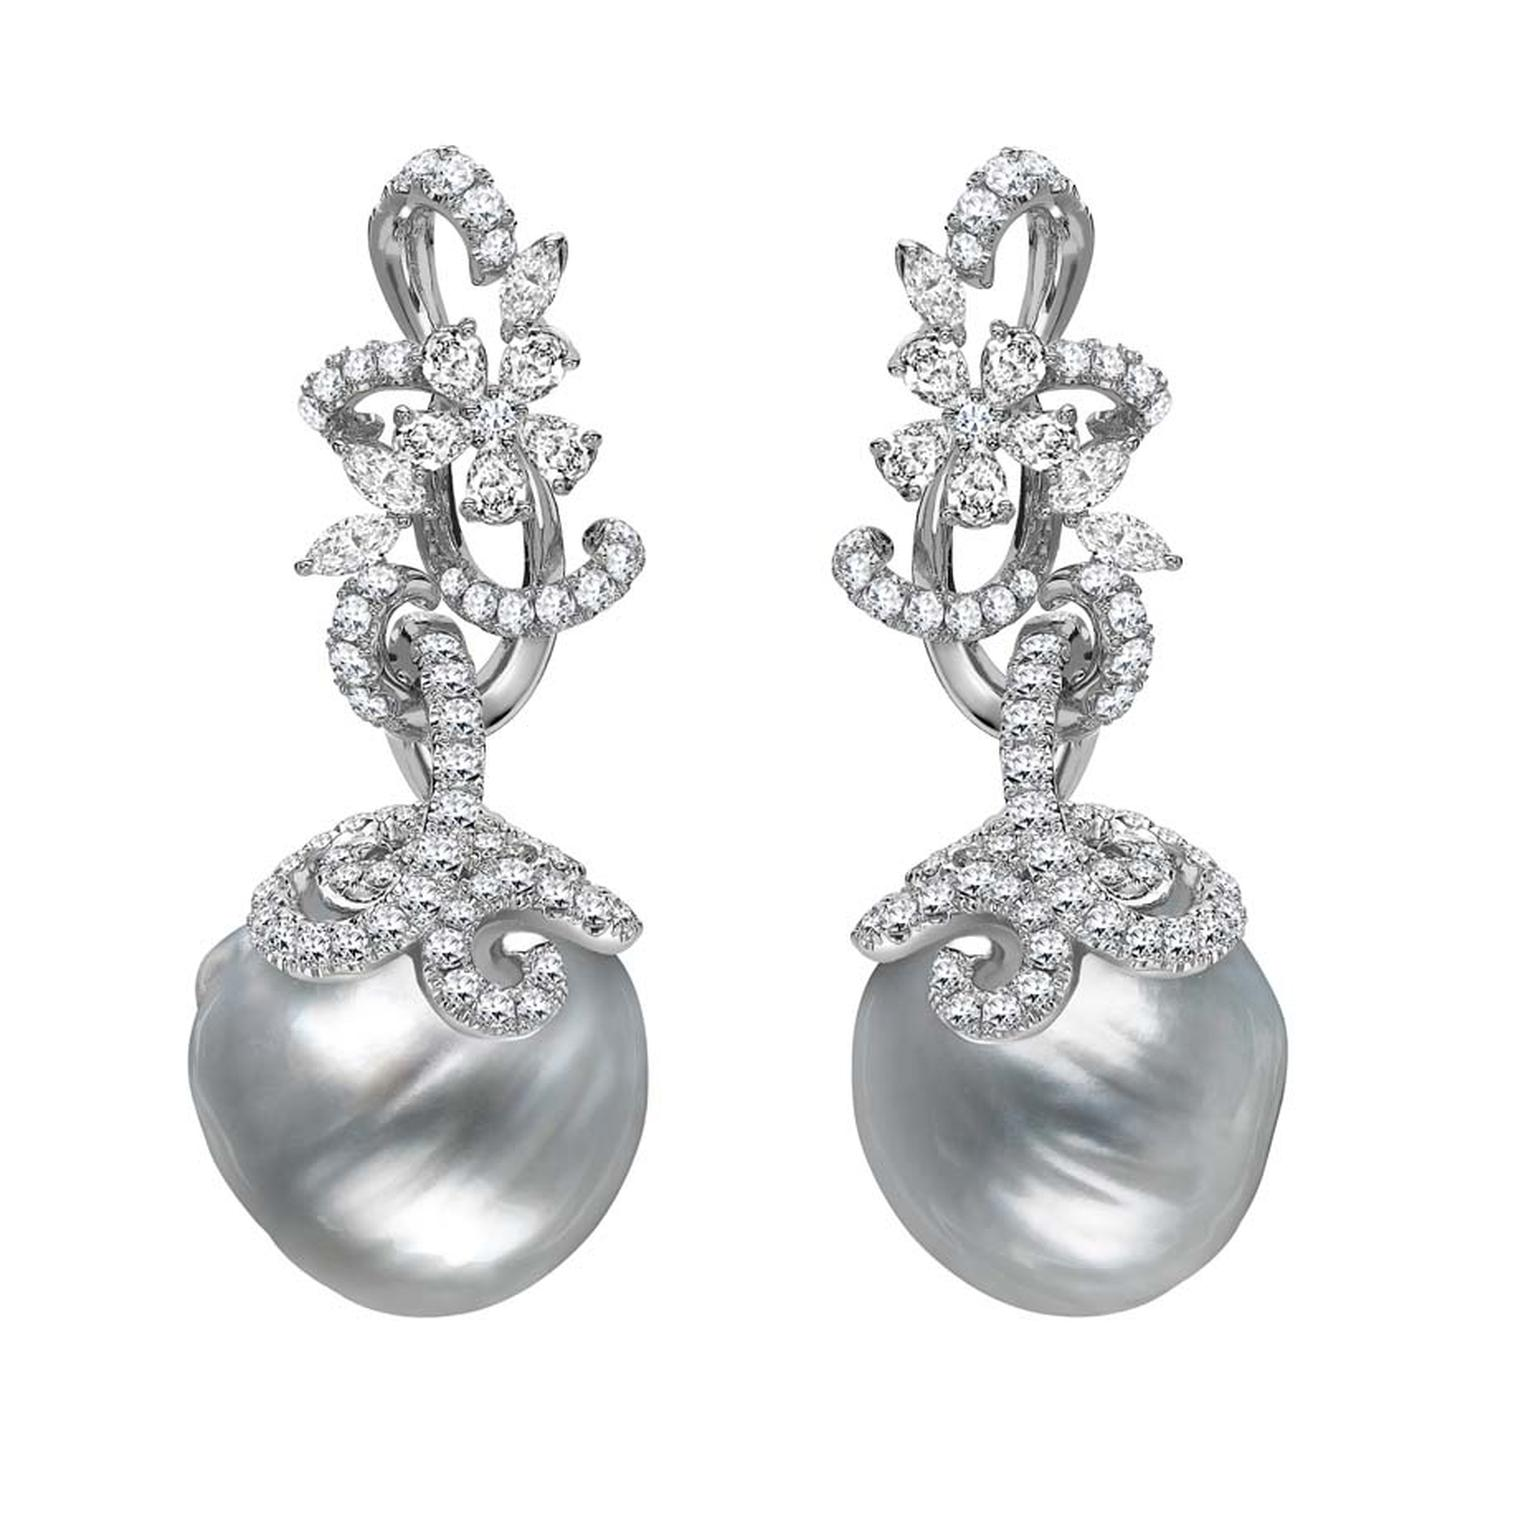 Mikimoto Regalia Collection Arabesque earrings featuring white South Sea baroque pearls entwined in white gold, platinum and diamond-set foliage